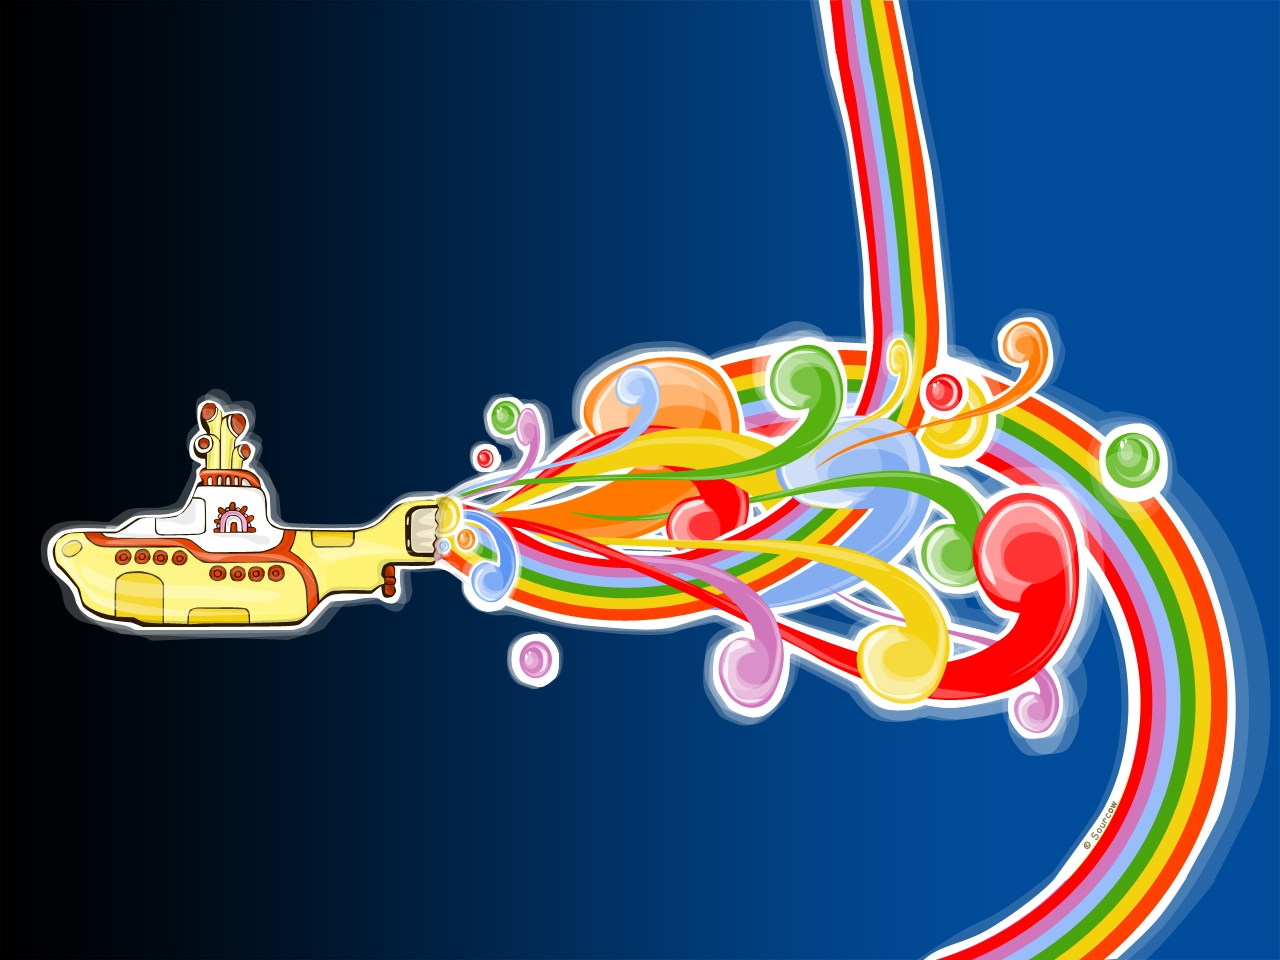 Yellow Submarine Wallpaper - WallpaperSafari